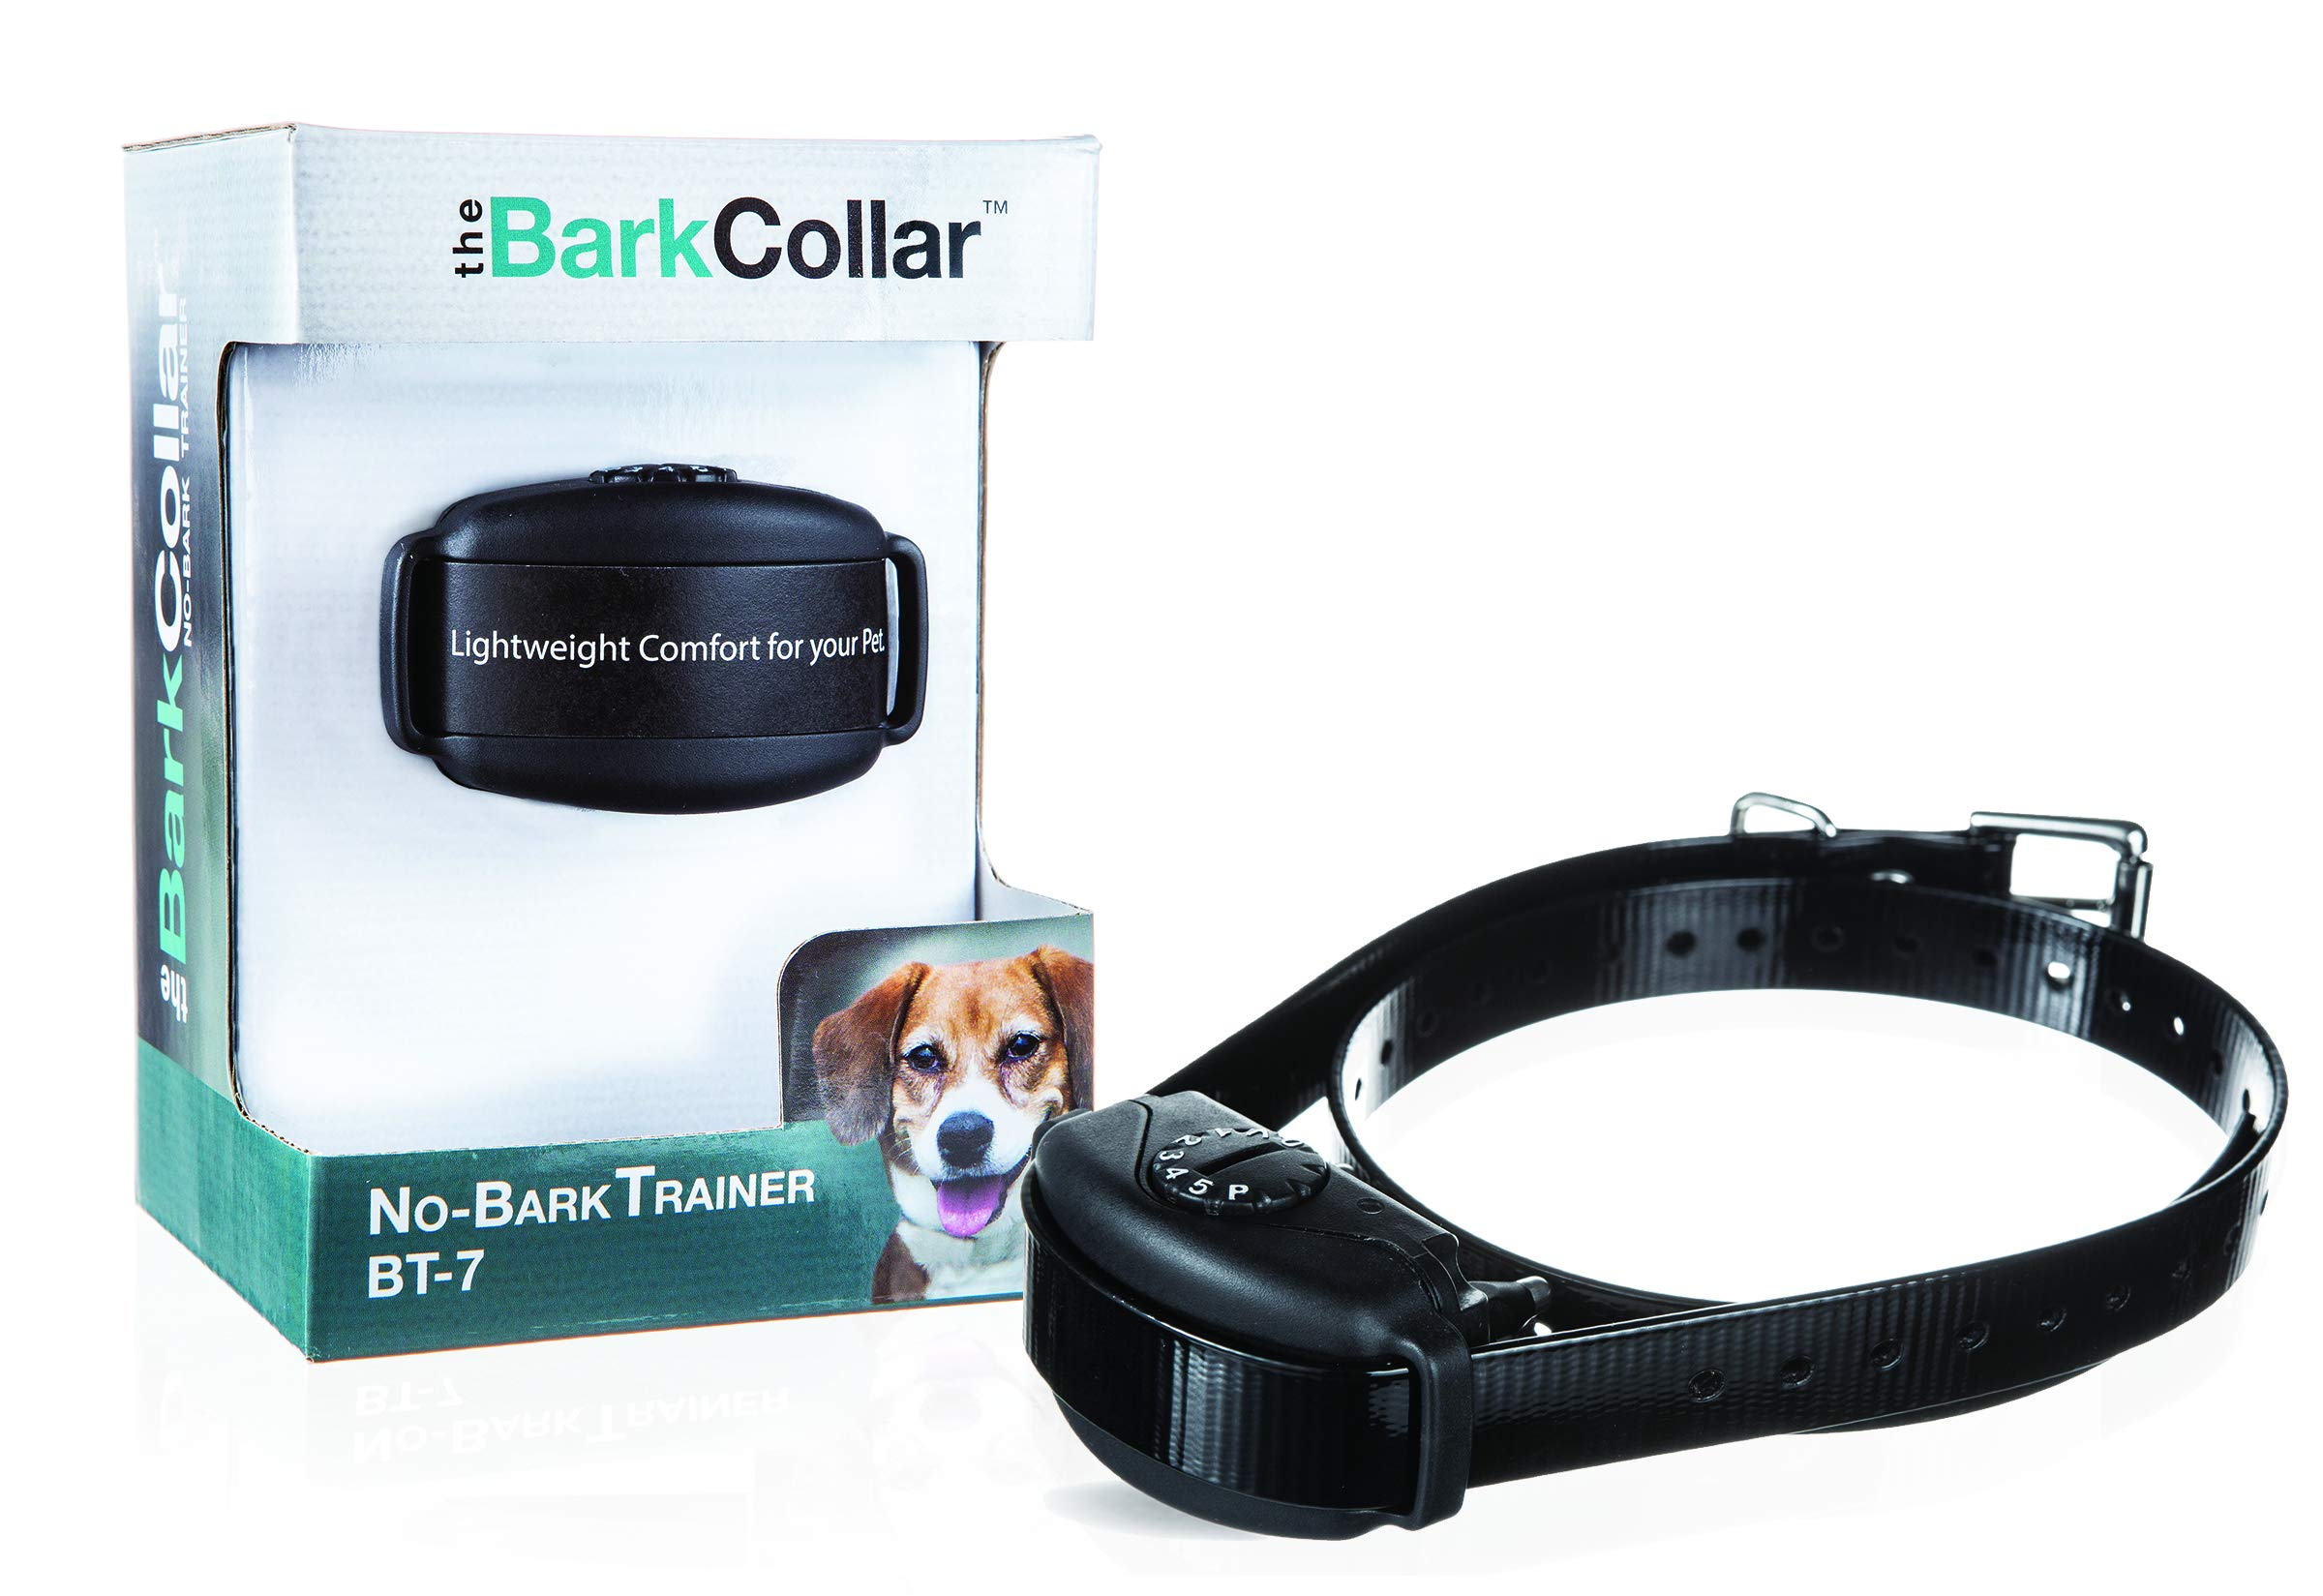 DogWatch The BarkCollar No-Bark Training Collar with Bark Forgiveness, Auto-Adjusting Levels, Bark Counter, and Rechargeable Battery by DogWatch